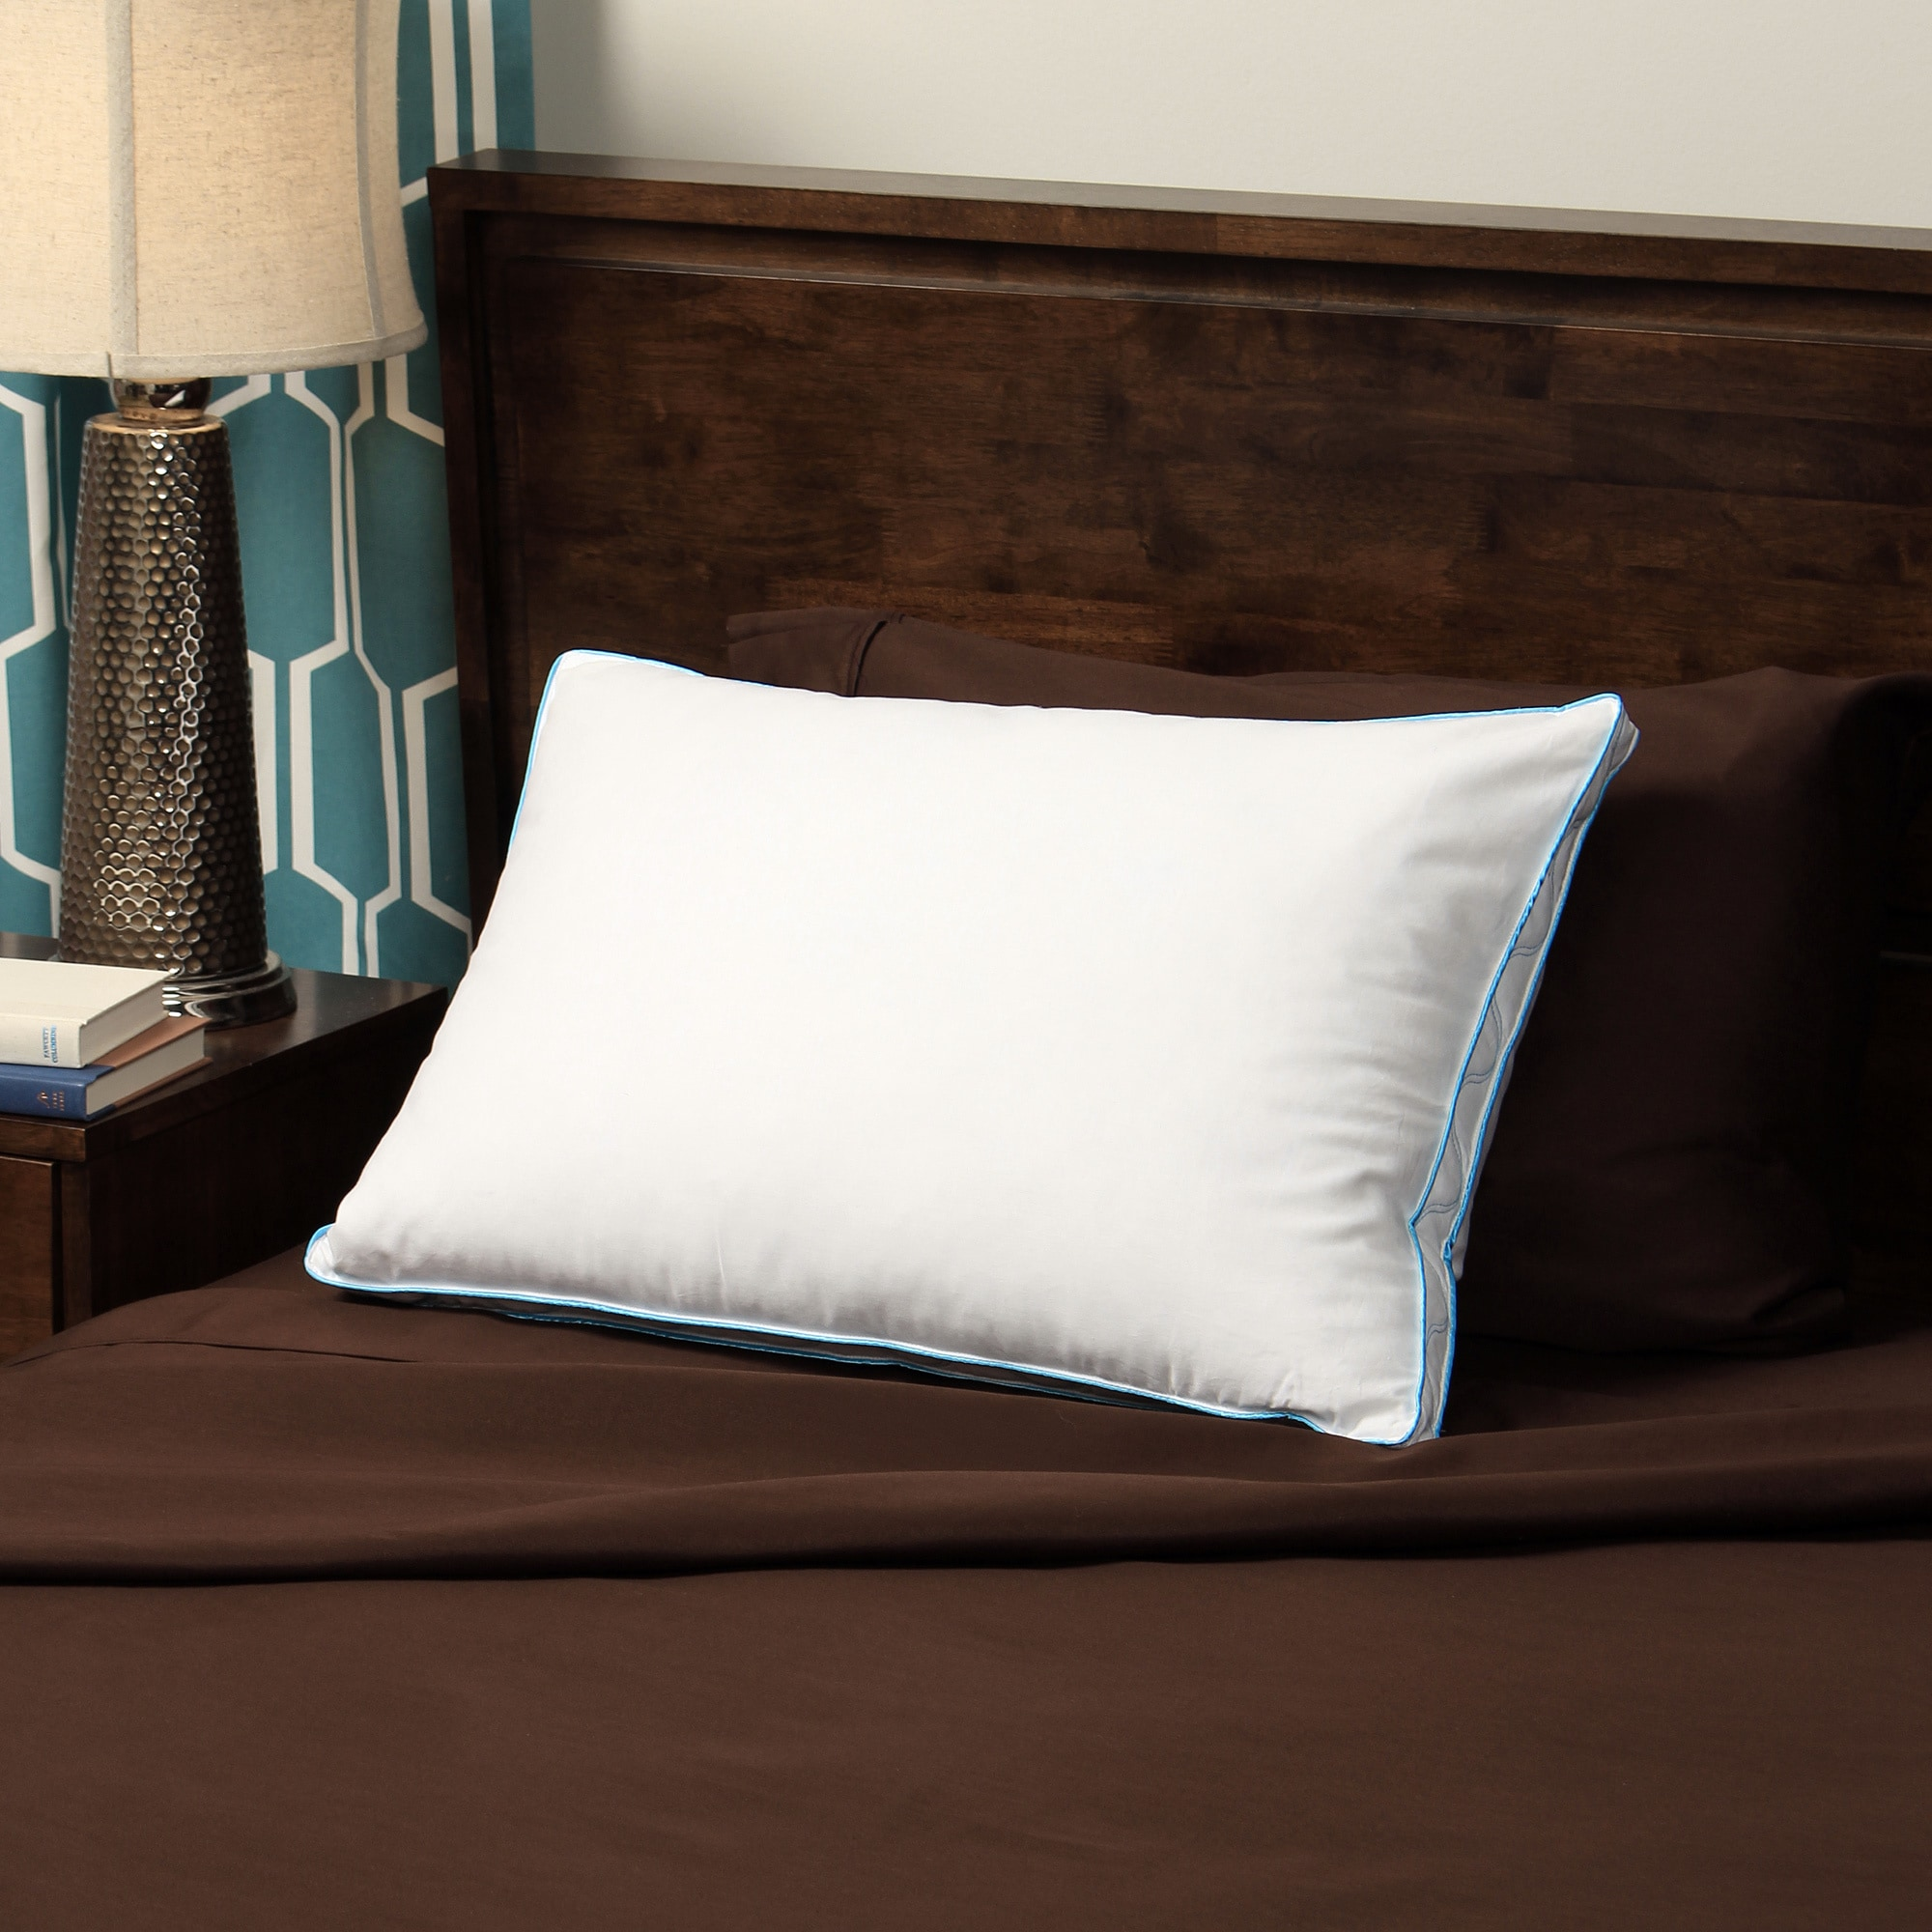 Overstock.com CozyClouds by DownLinens Feather and Down Compartment Pillow